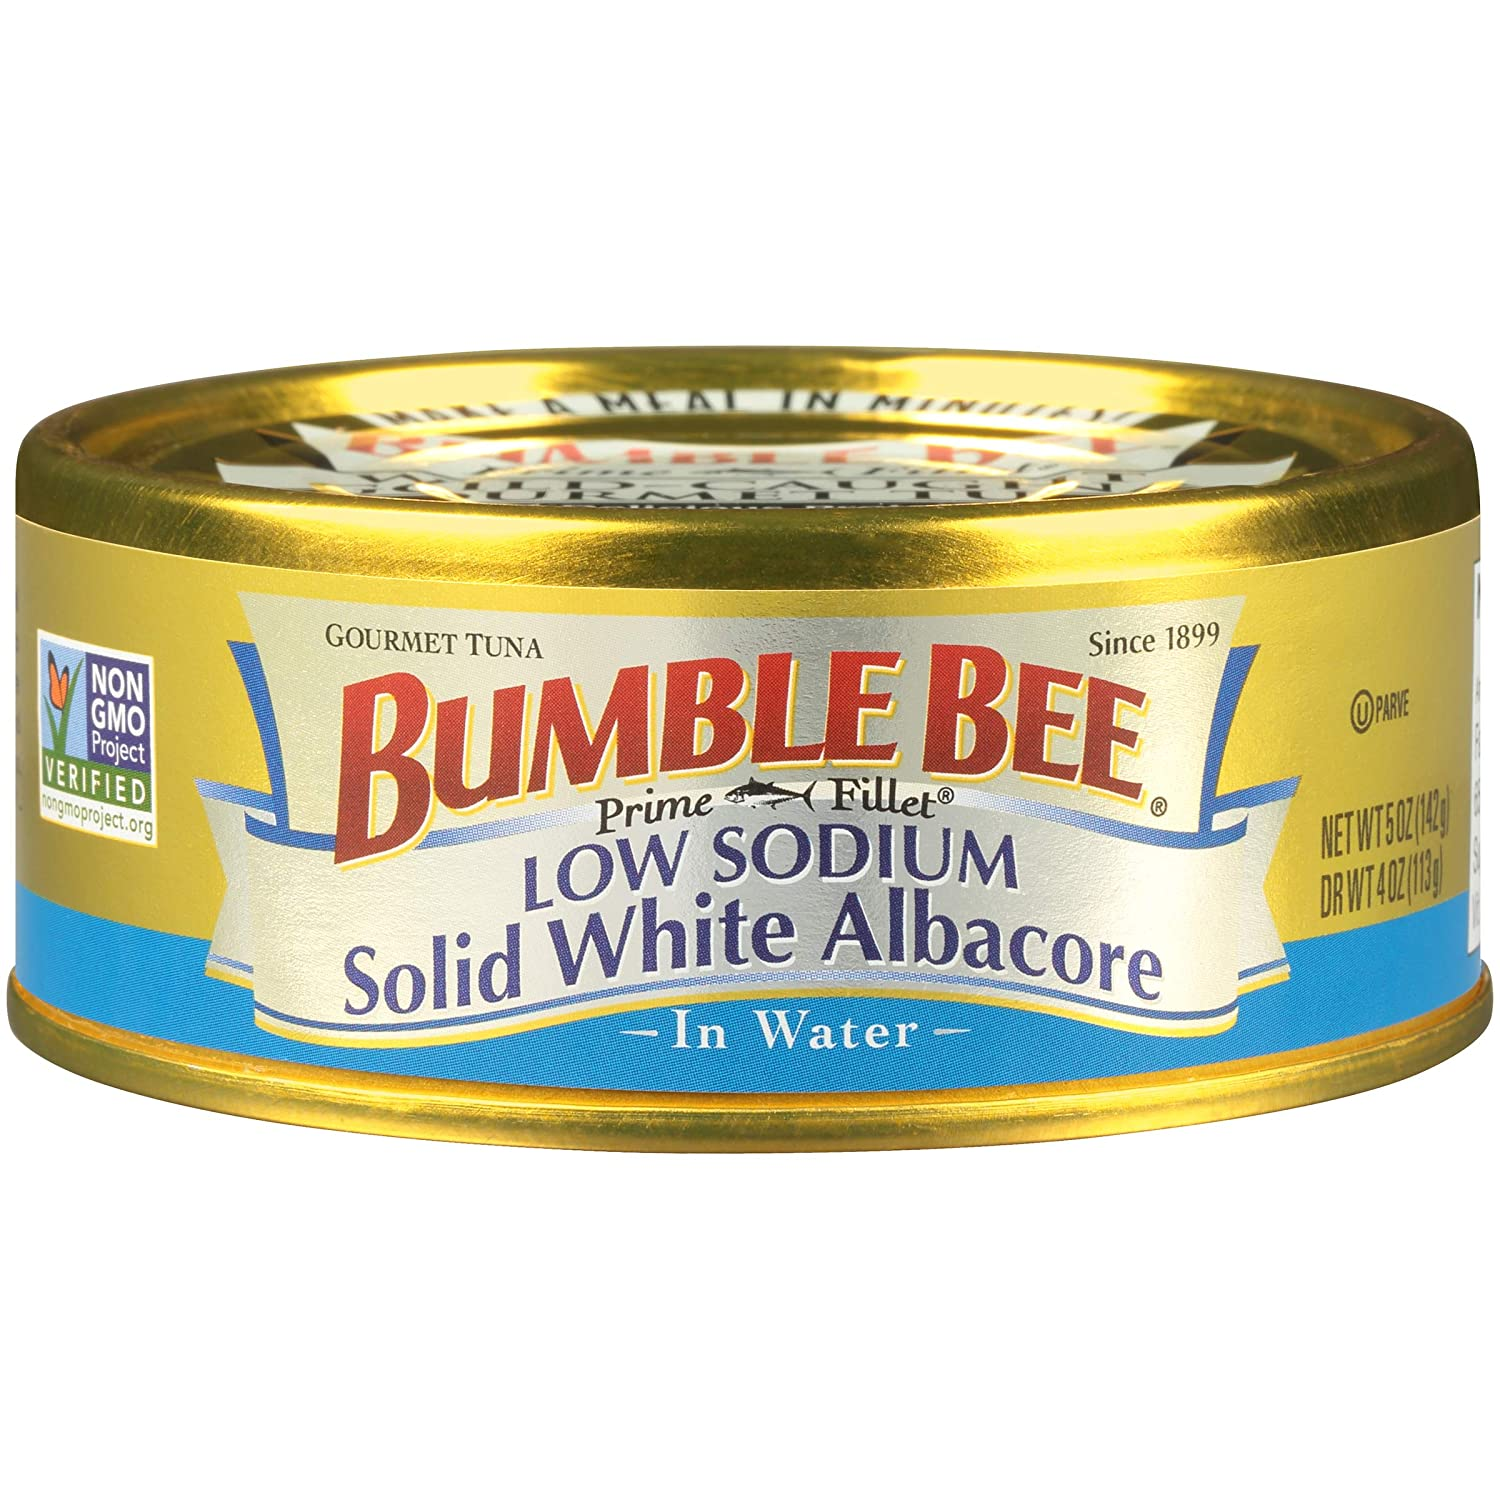 BUMBLE BEE Prime Fillet Solid White Albacore Tuna in Water, Low Sodium, Canned Tuna Fish, High Protein Food, 5 Ounce Can (Pack of 12)